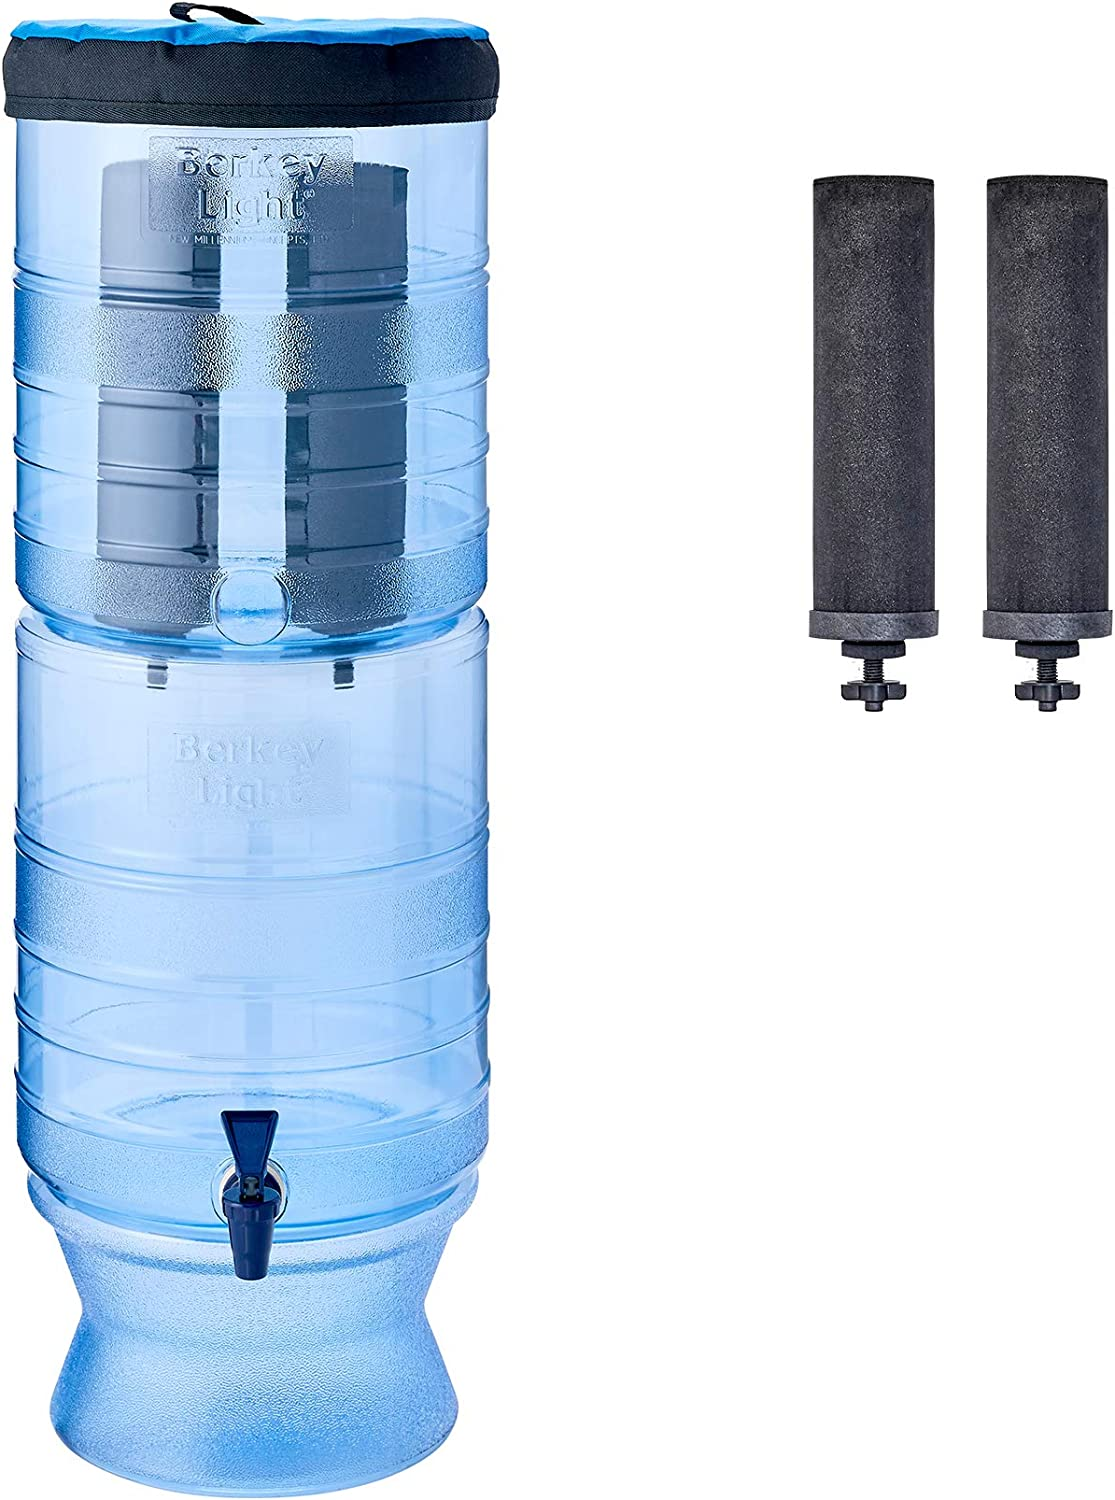 Berkey Light Gravity-Fed Water Filter with 2 Black Berkey Purification Elements